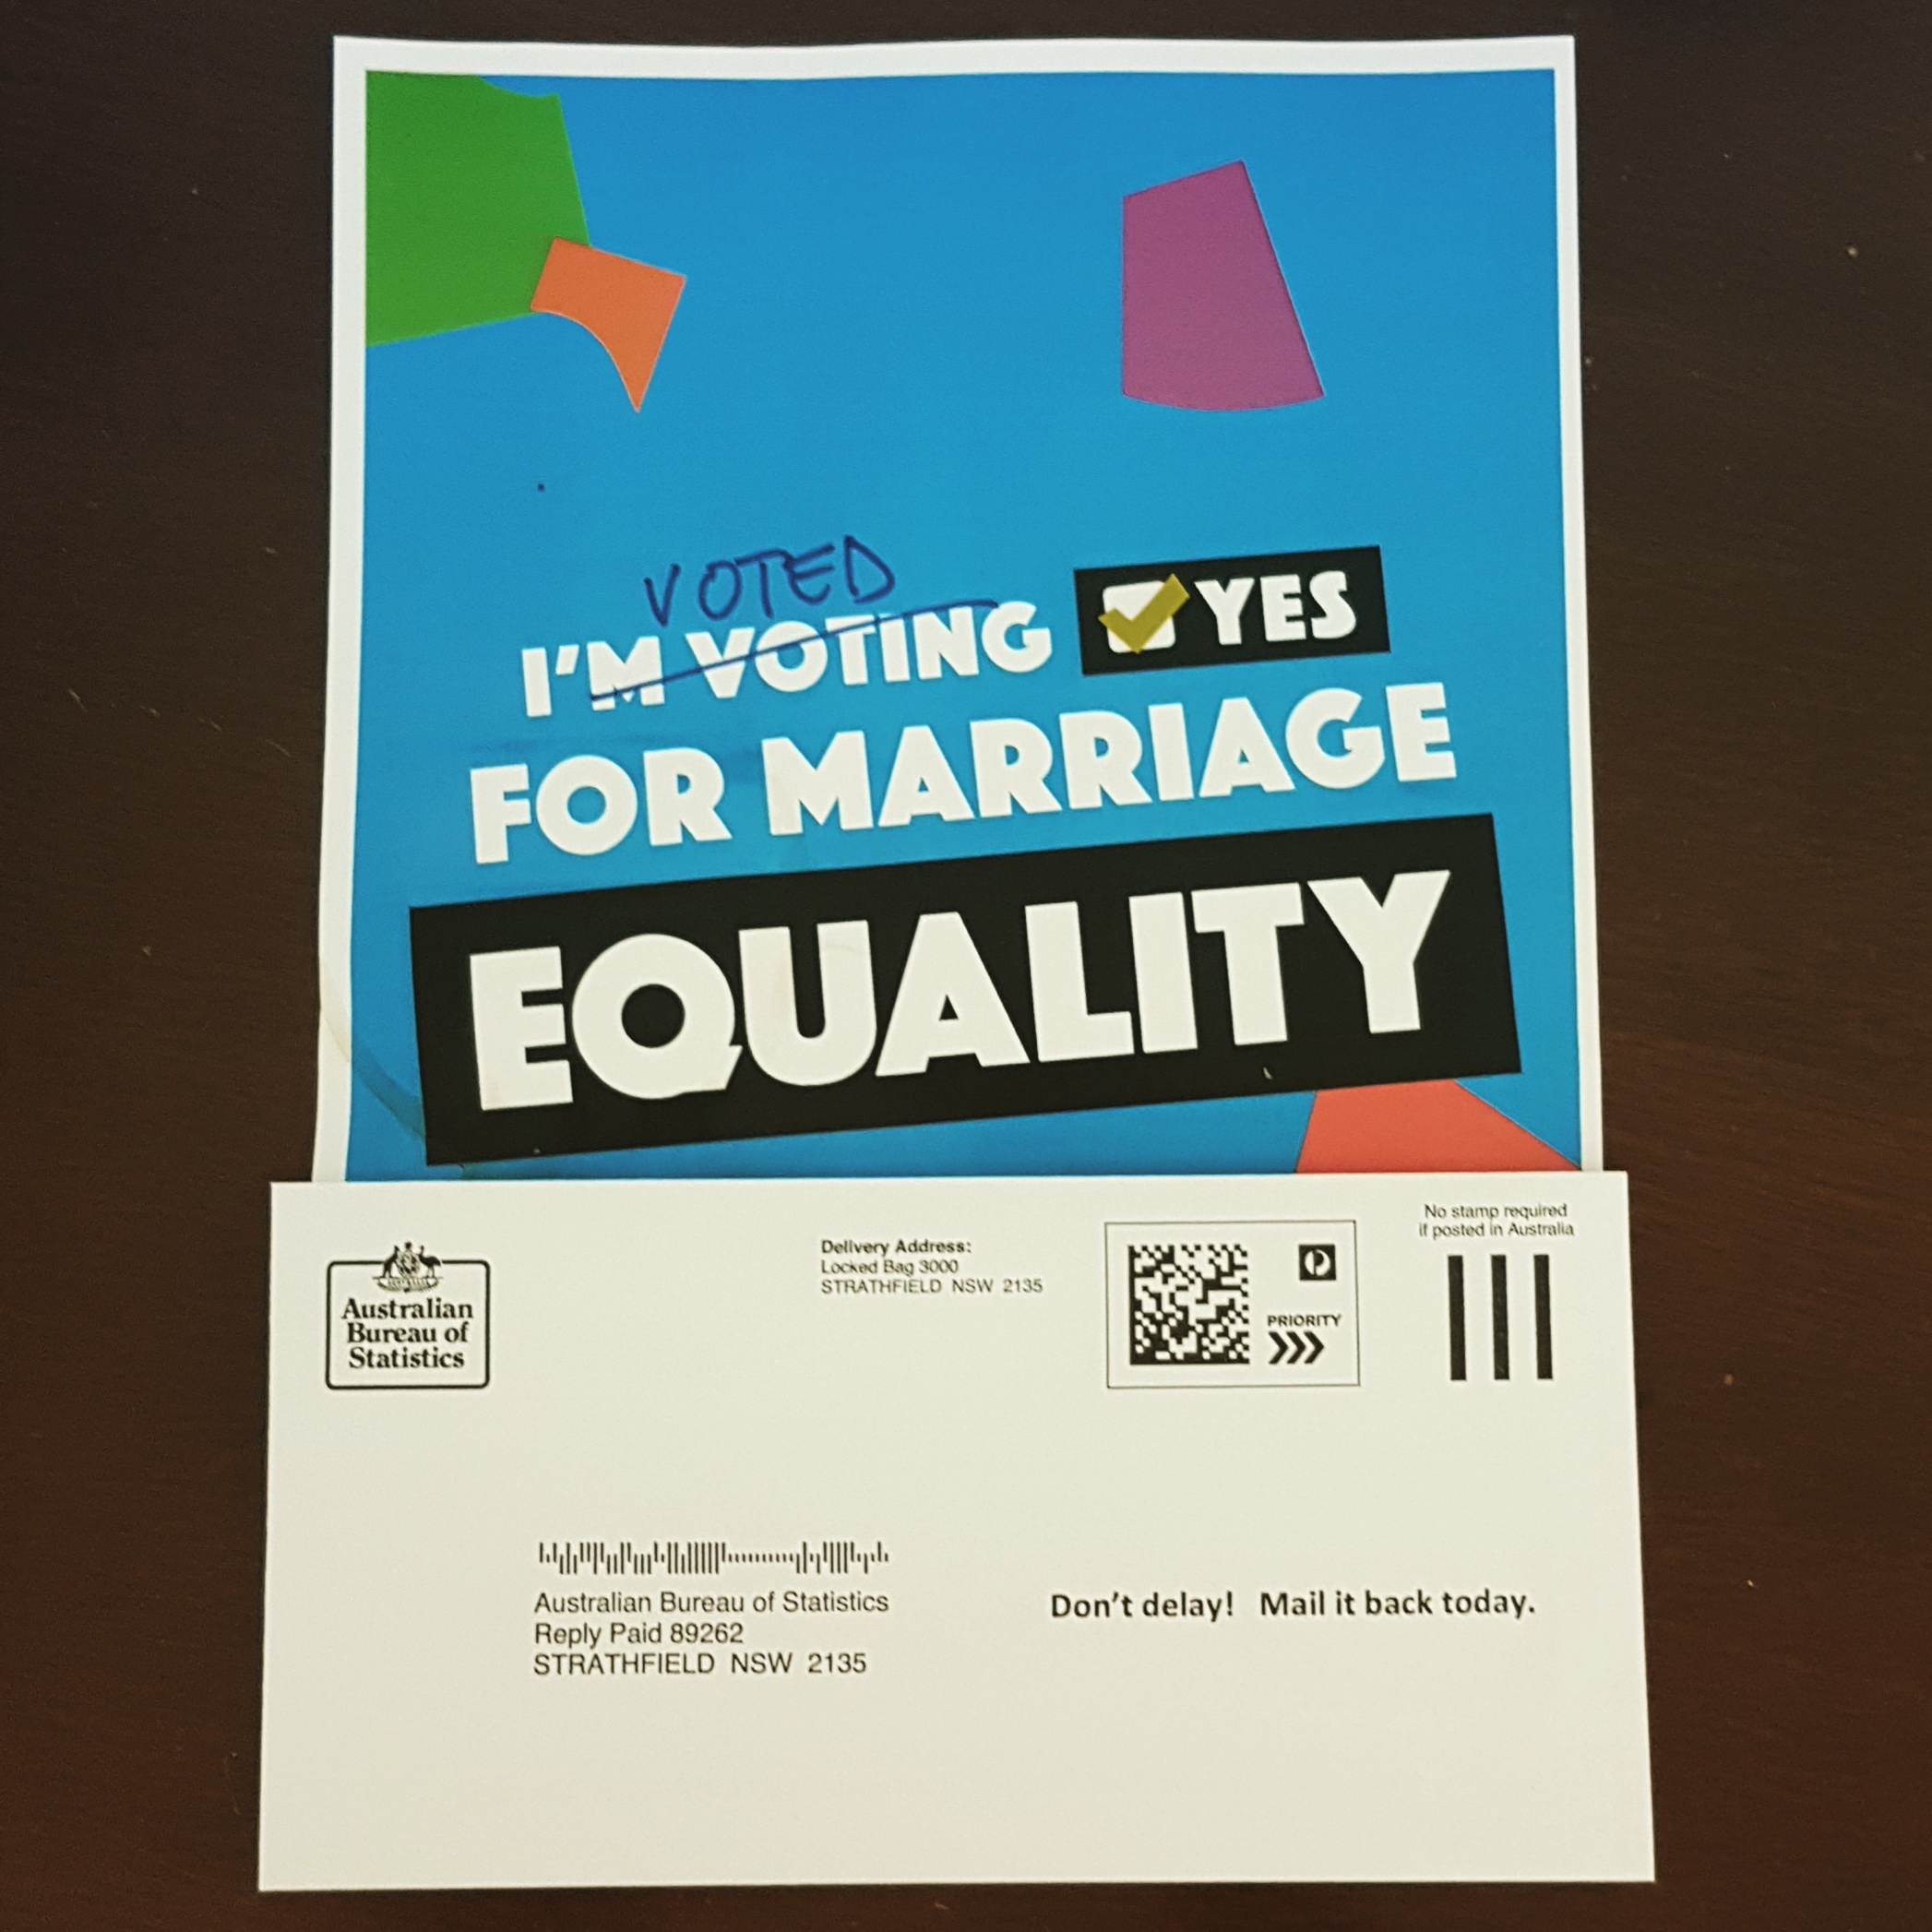 Battle fatigue as LGBTQI Australians remember #VoteYes